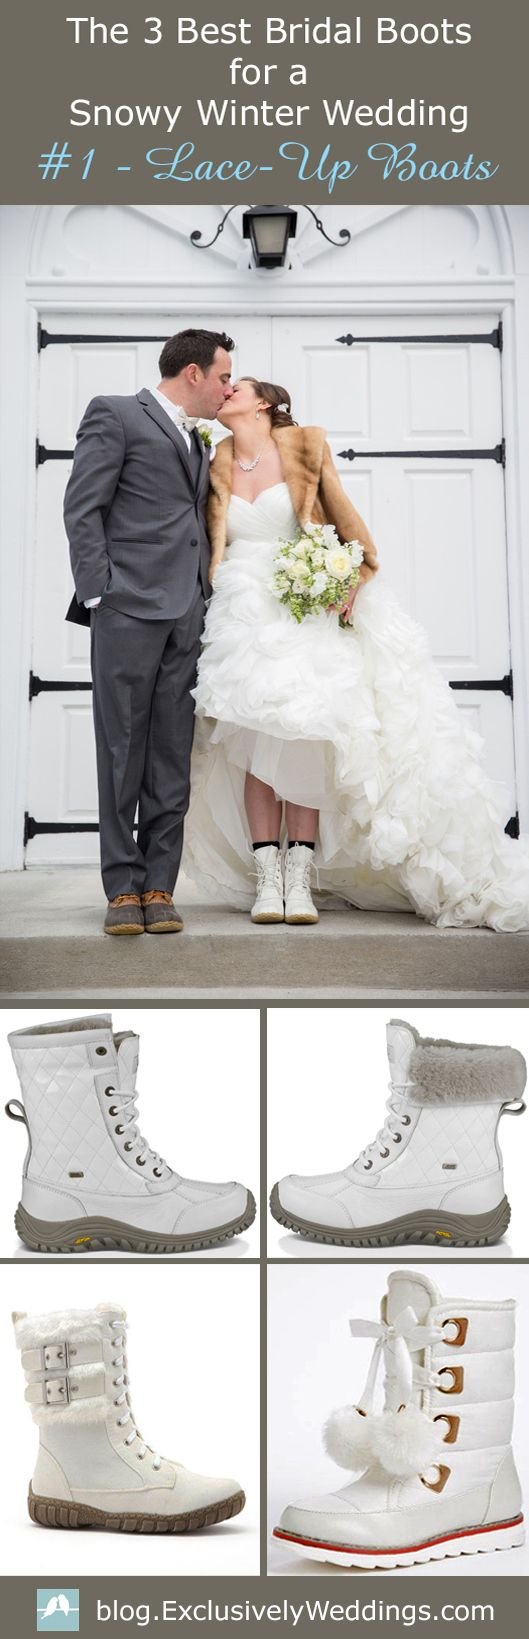 Bridal Snow Boots - Winter Wedding Boots for the Bride - If you plan to wear boots at some point on your wedding day, there are three styles of boots that I think work really well for brides and they are  ….